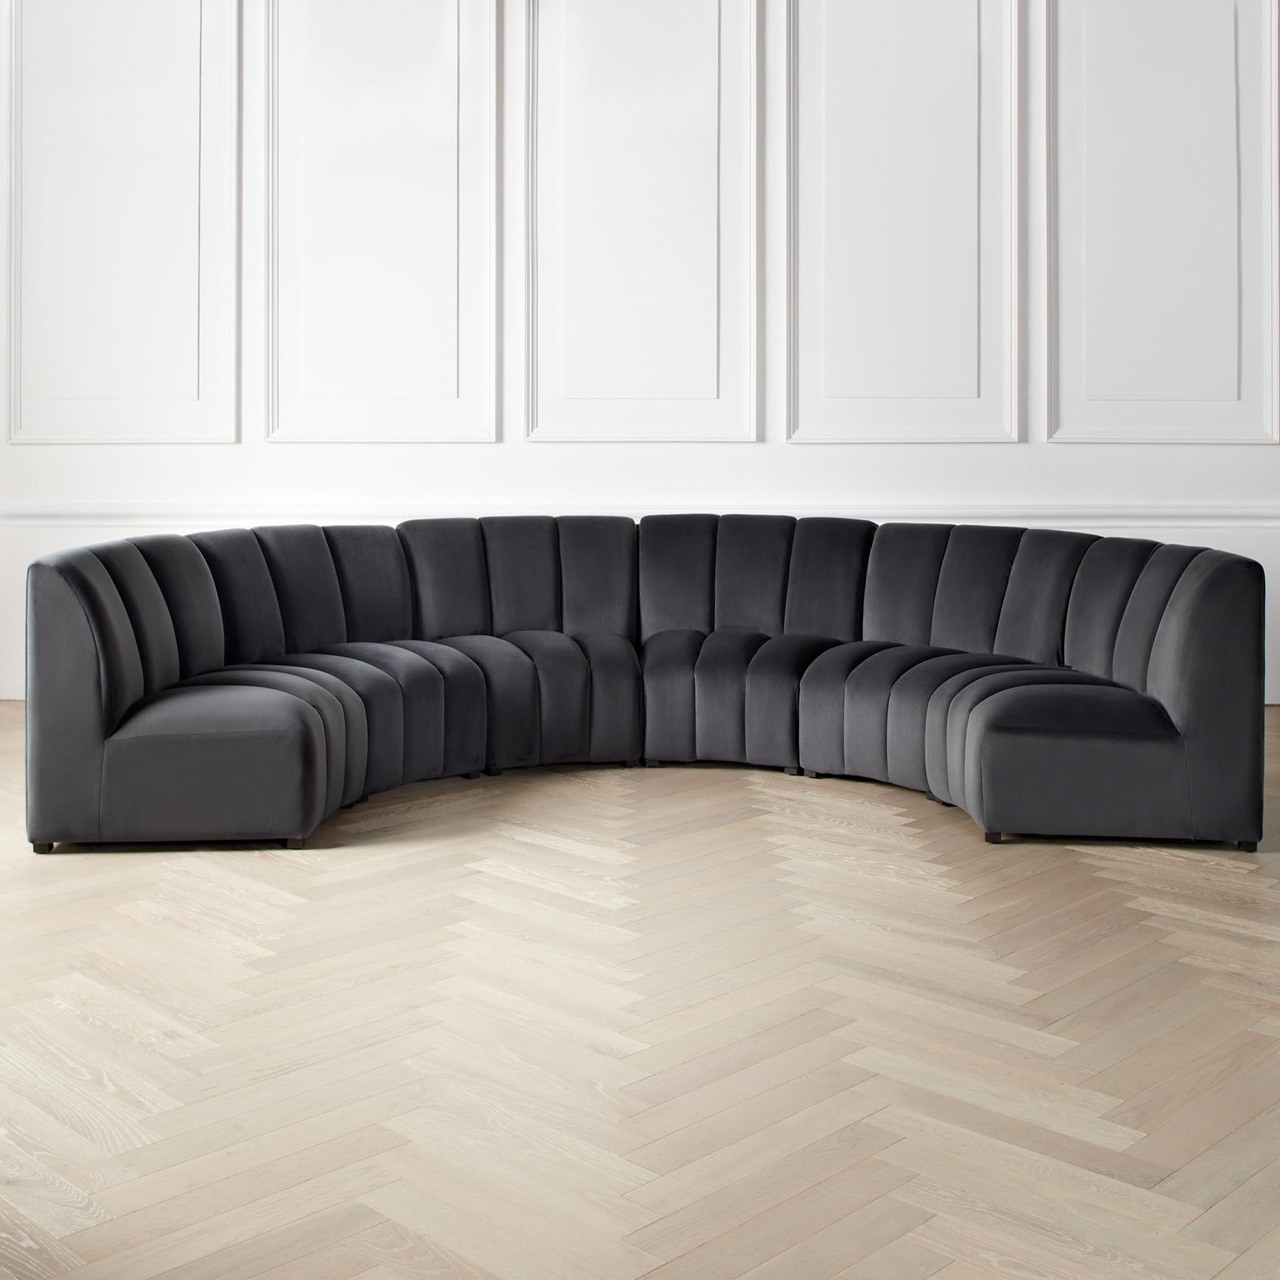 In Stock - Jayce 6 PC Sectional